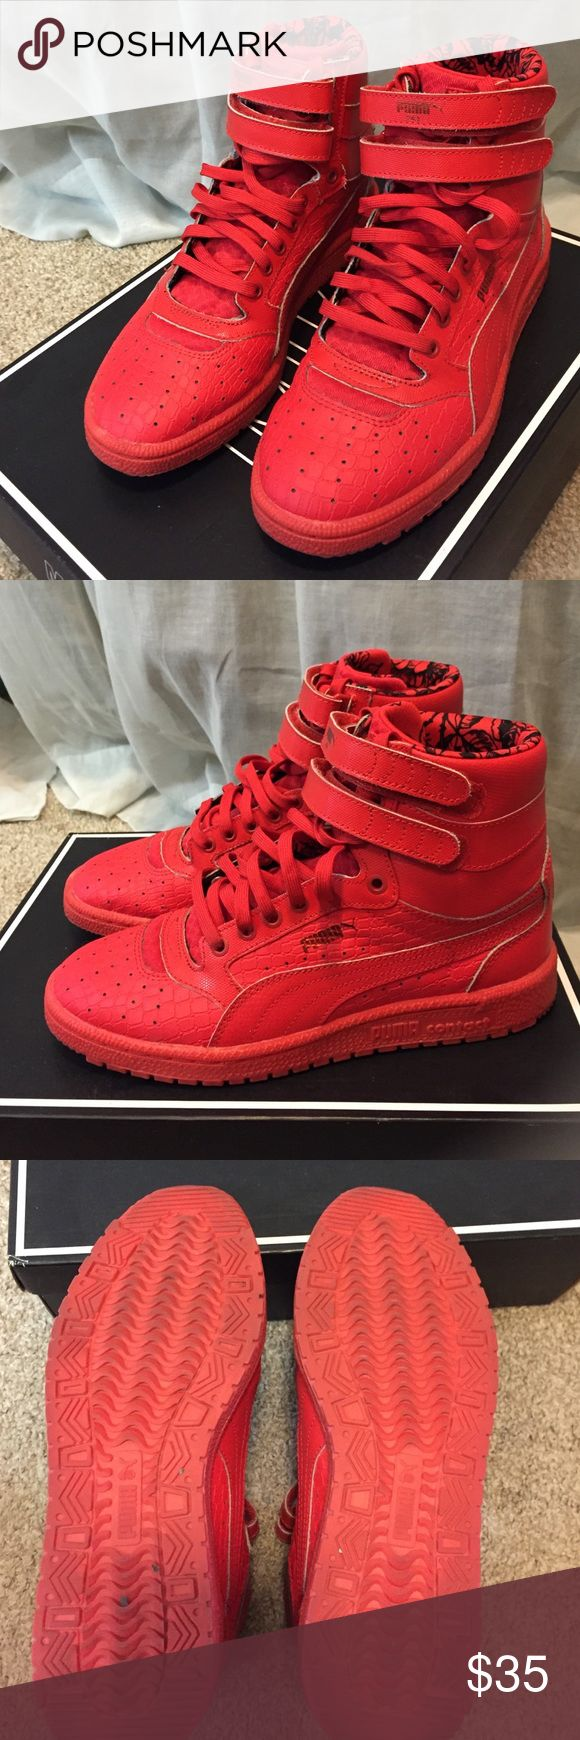 Red PUMA high tops sneakers All red Puma high top sneakers. Only worn twice---in great condition! Puma Shoes Sneakers